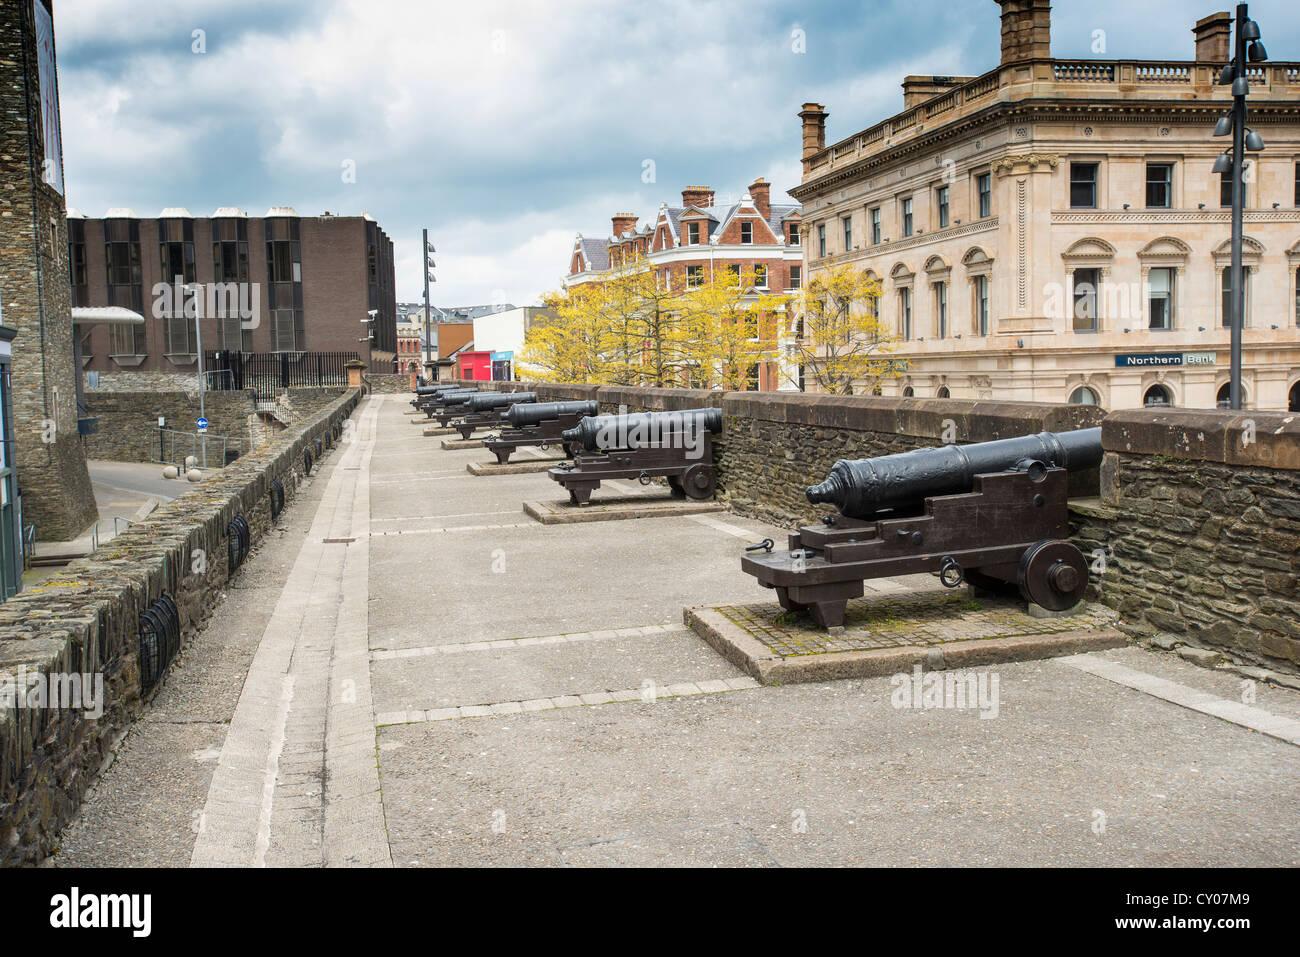 City walls, Derry, Londonderry, Northern Ireland, United Kingdom, Europe - Stock Image